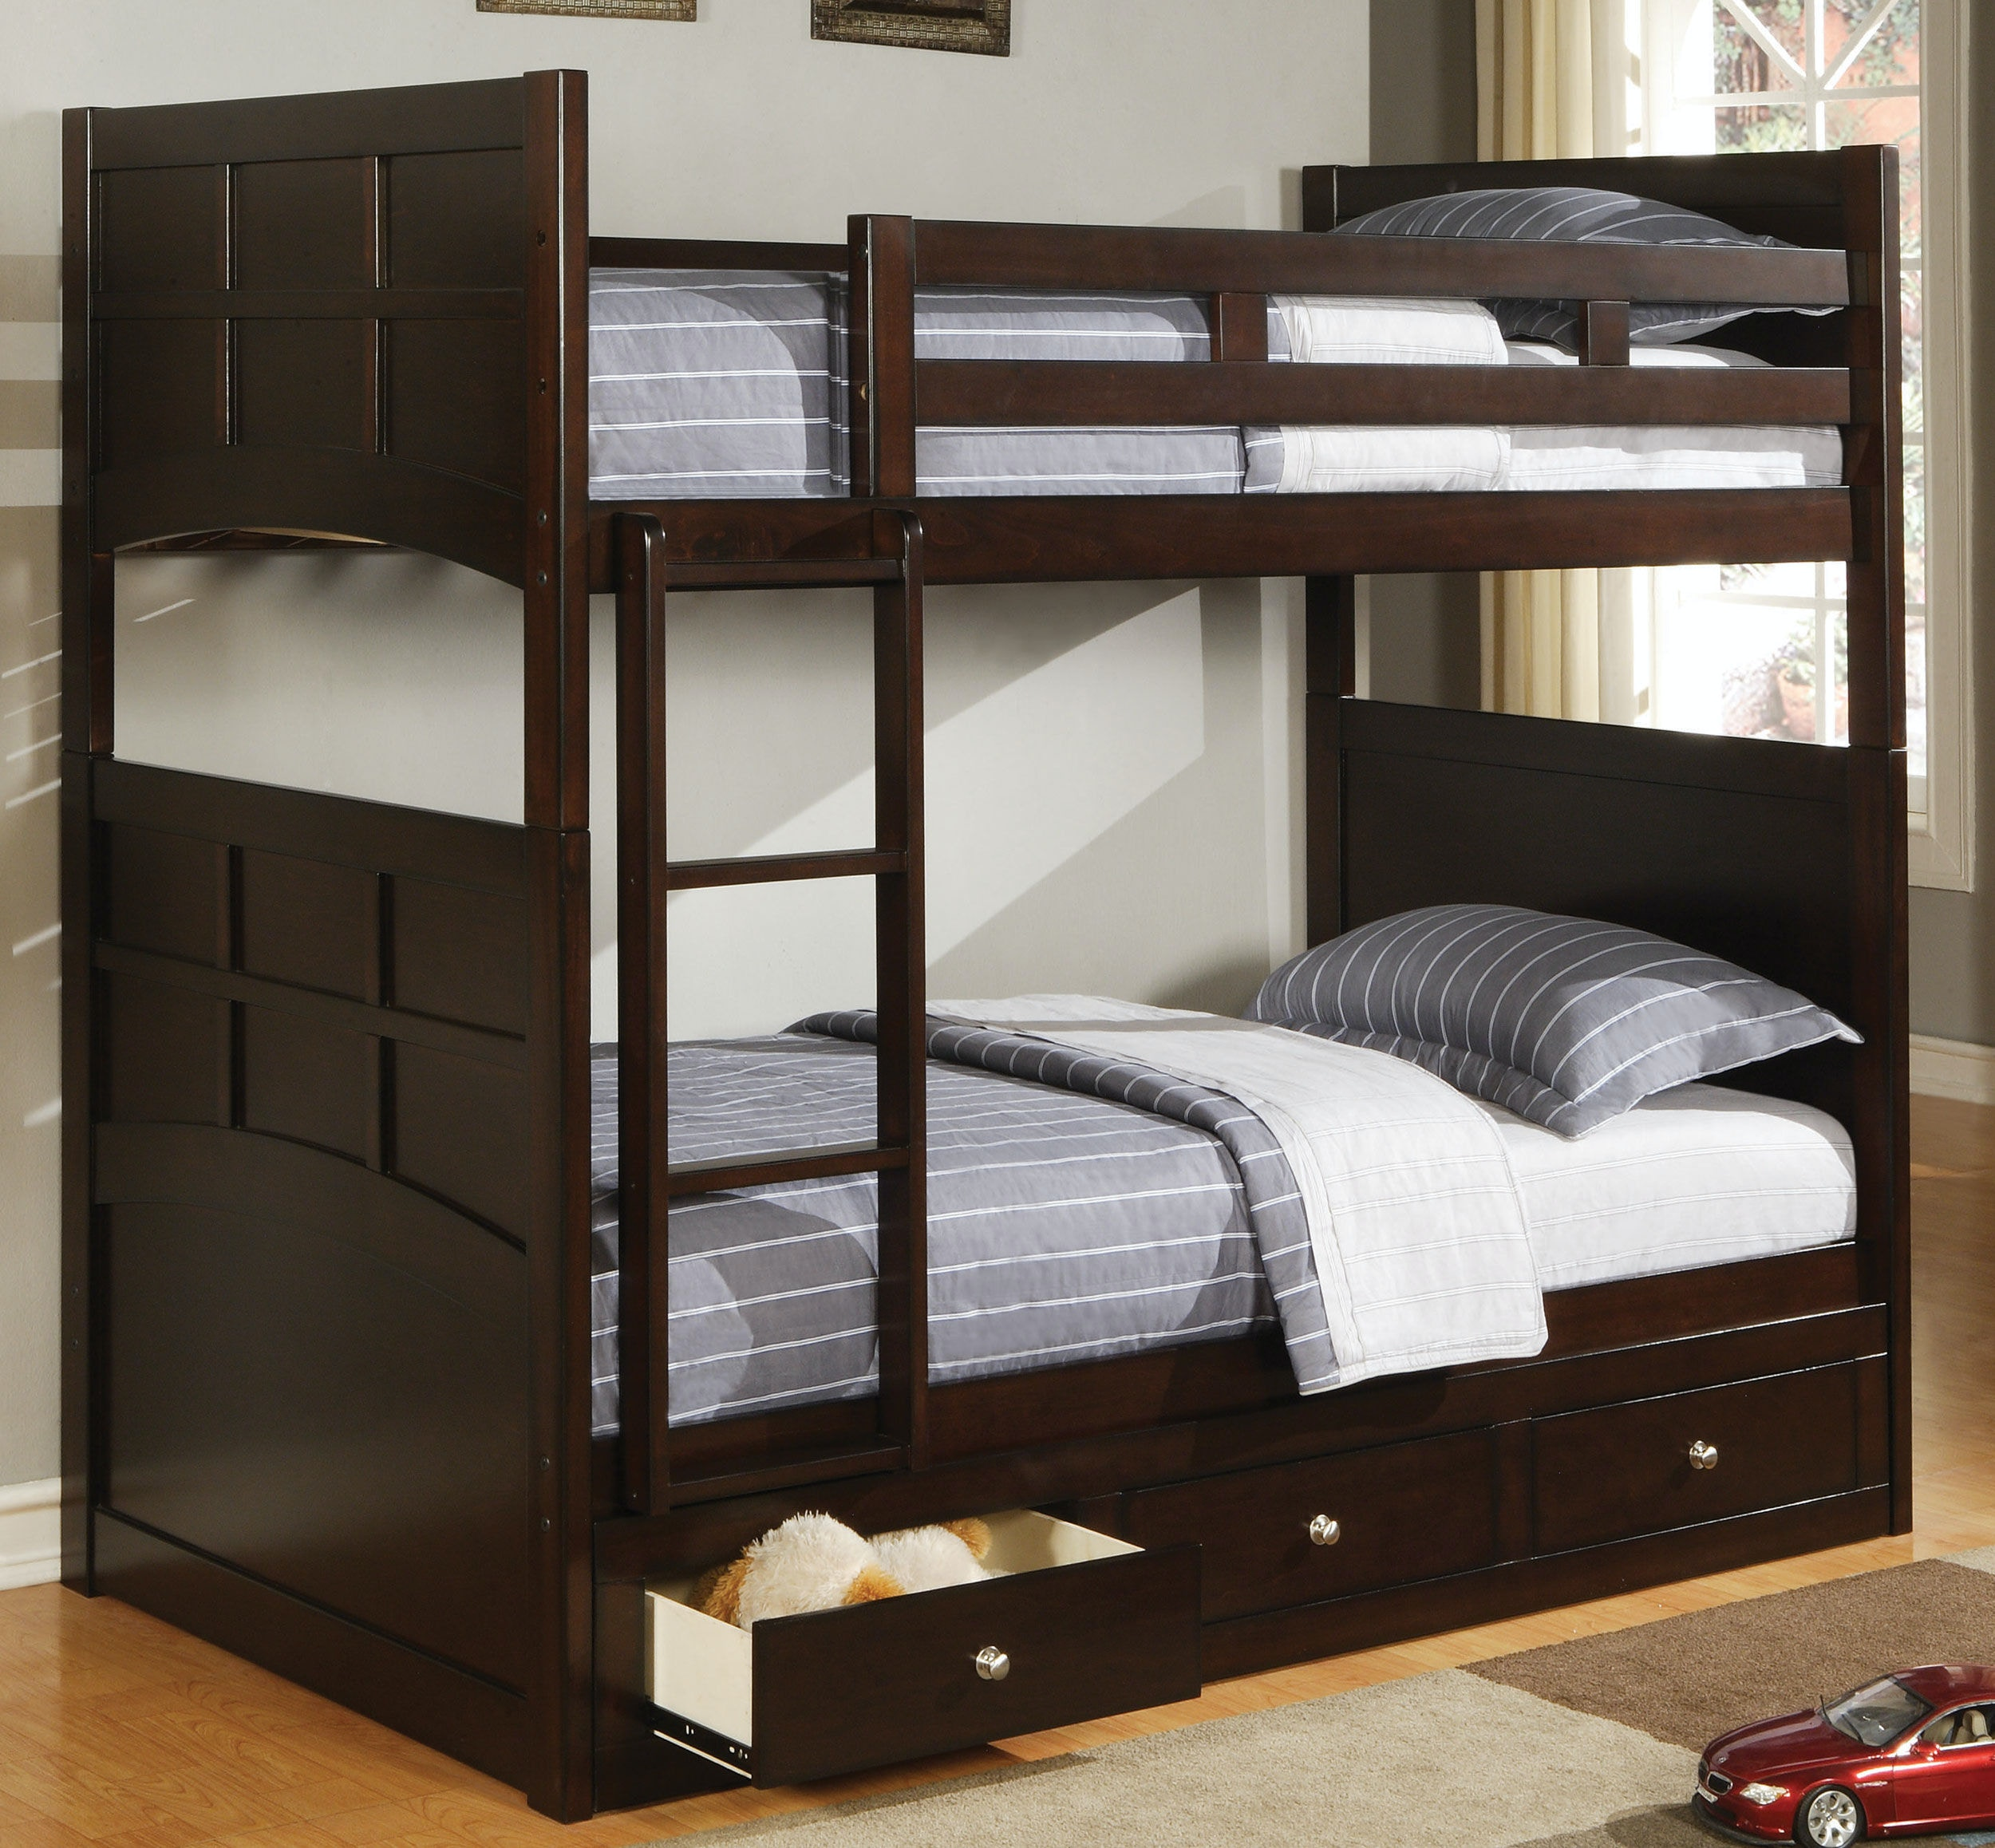 Aarons Bunk Beds Off 68 Online Shopping Site For Fashion Lifestyle